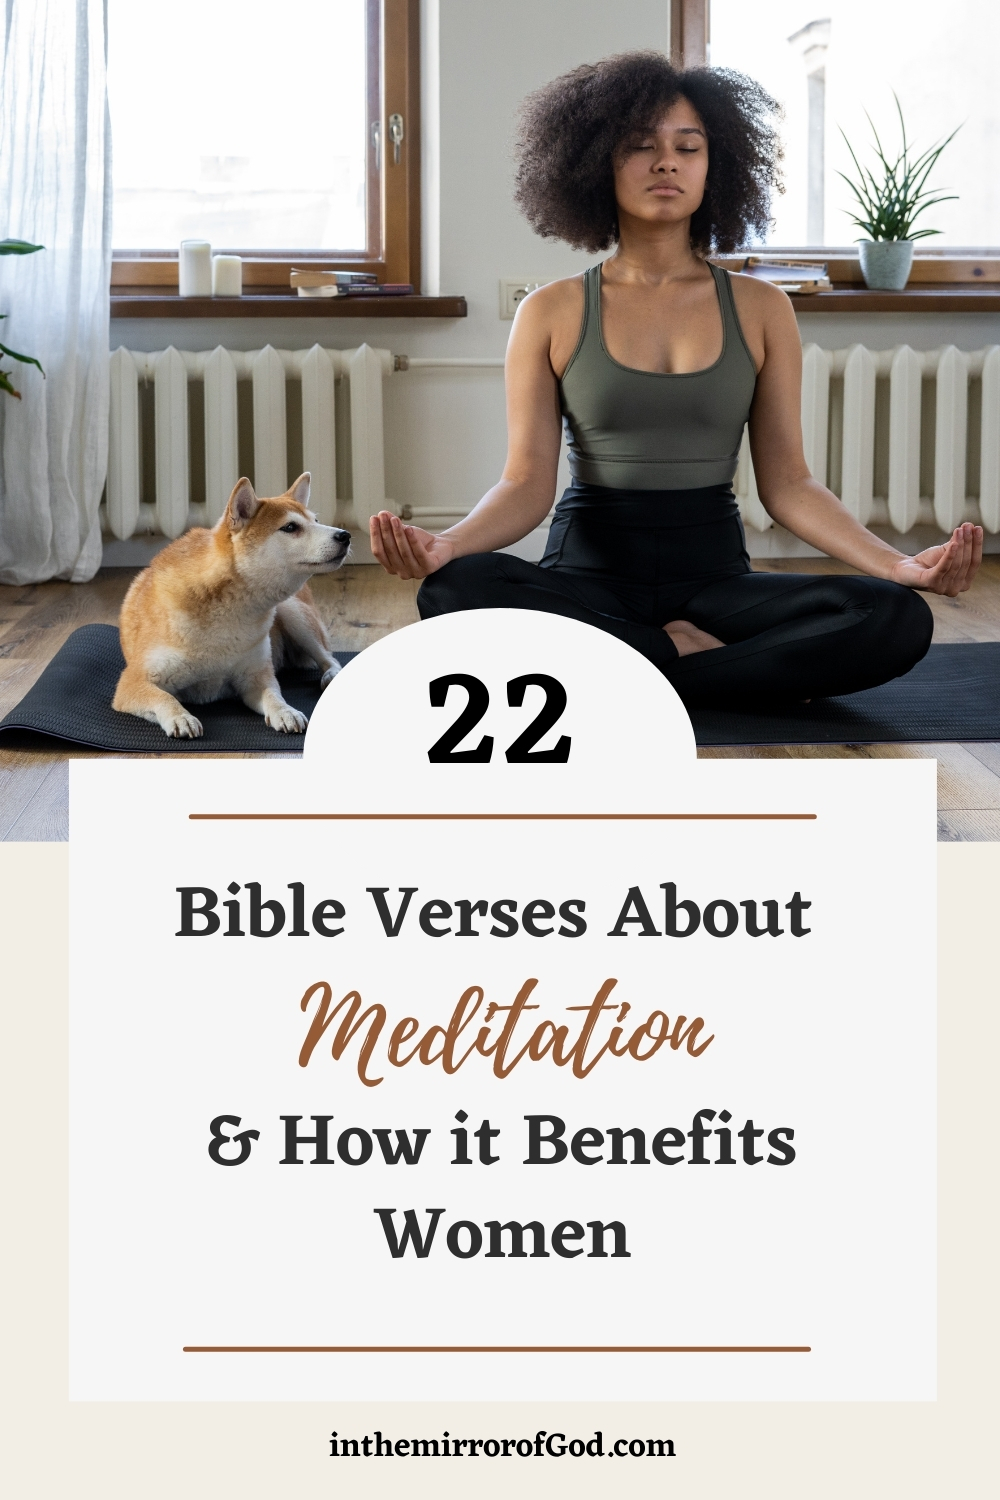 22 Bible Verses About Meditation and How It Benefits Women